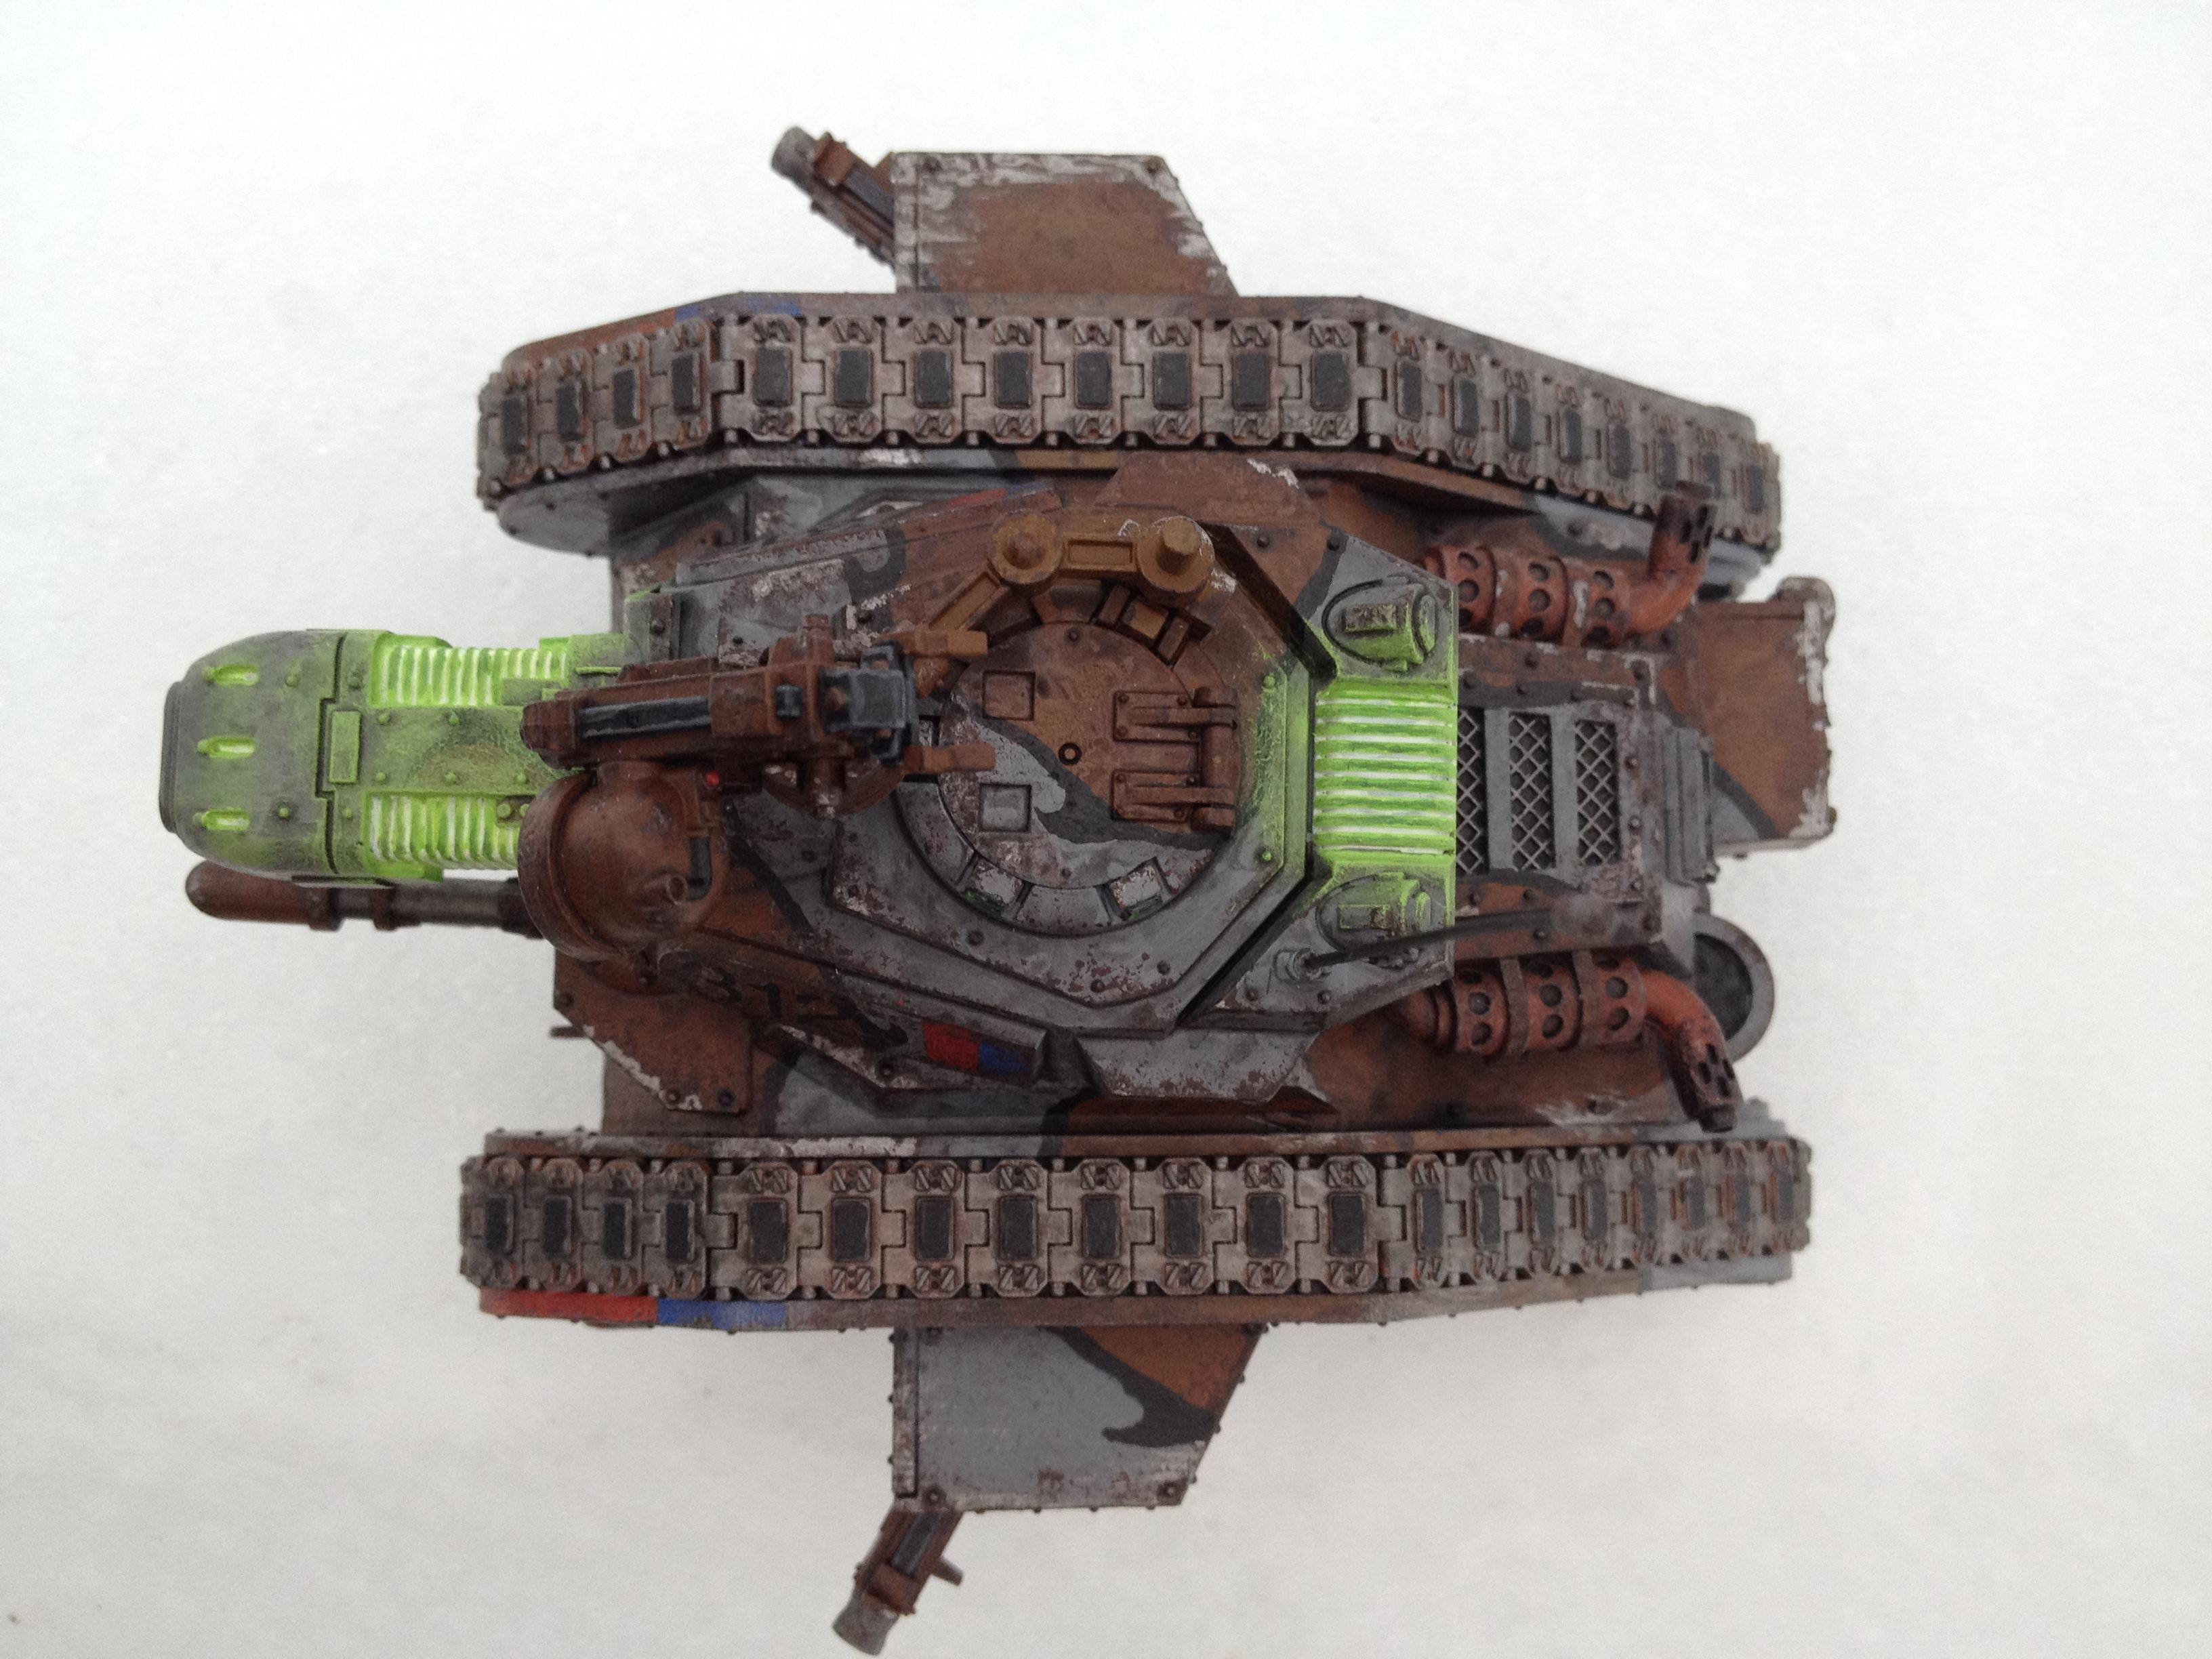 Cadians, Conversion, Executioner, Imperial Guard, Leman Russ, Object Source Lighting, Plasma